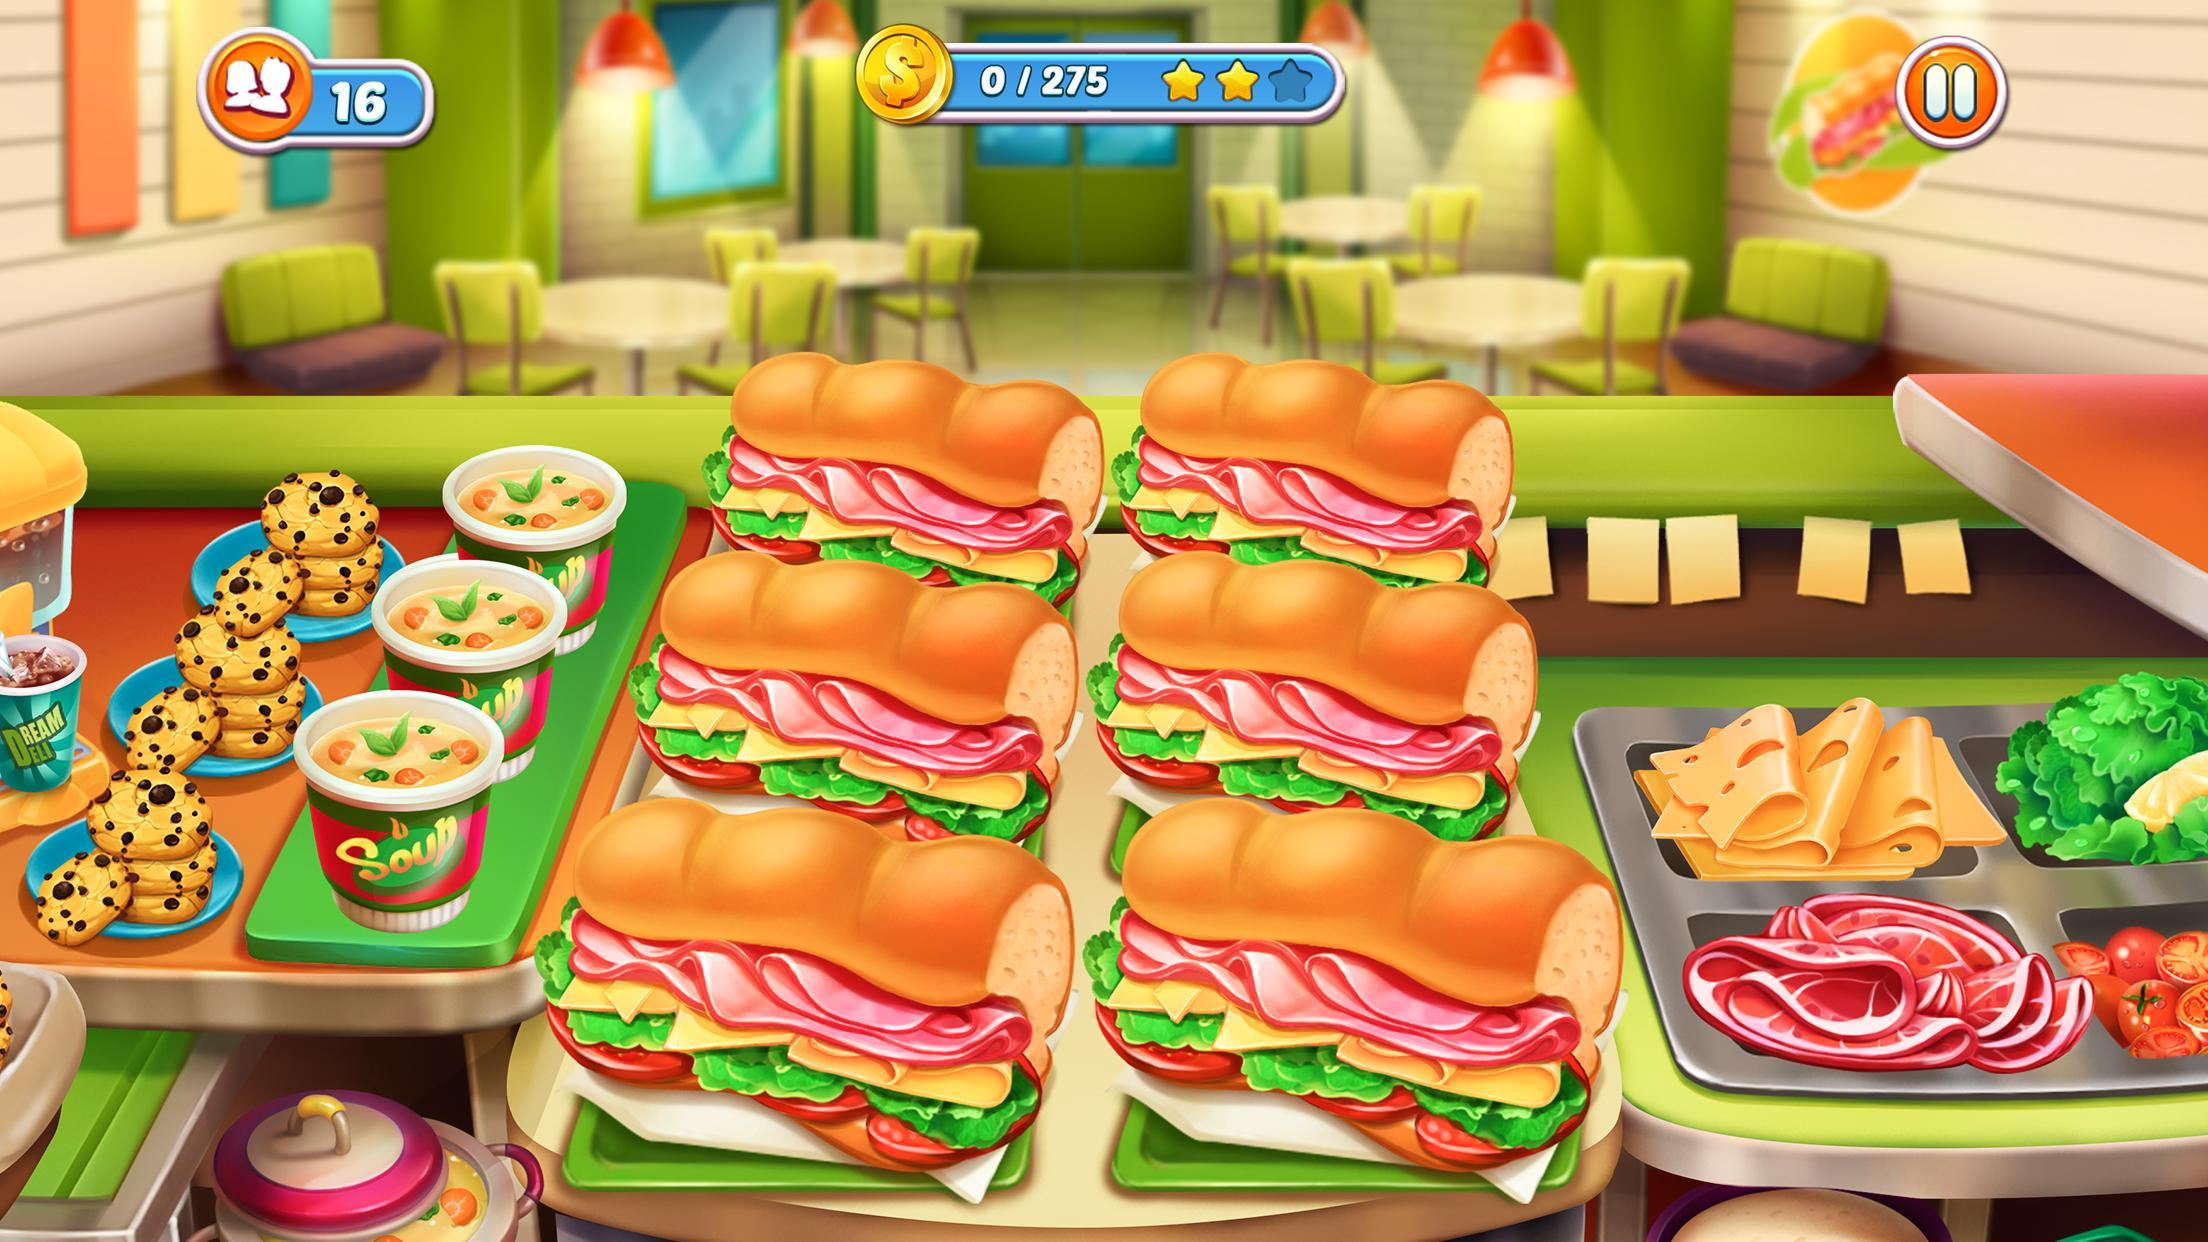 Cook It! Madness of Free Frenzy Cooking Games City 1.3.3 Screenshot 5